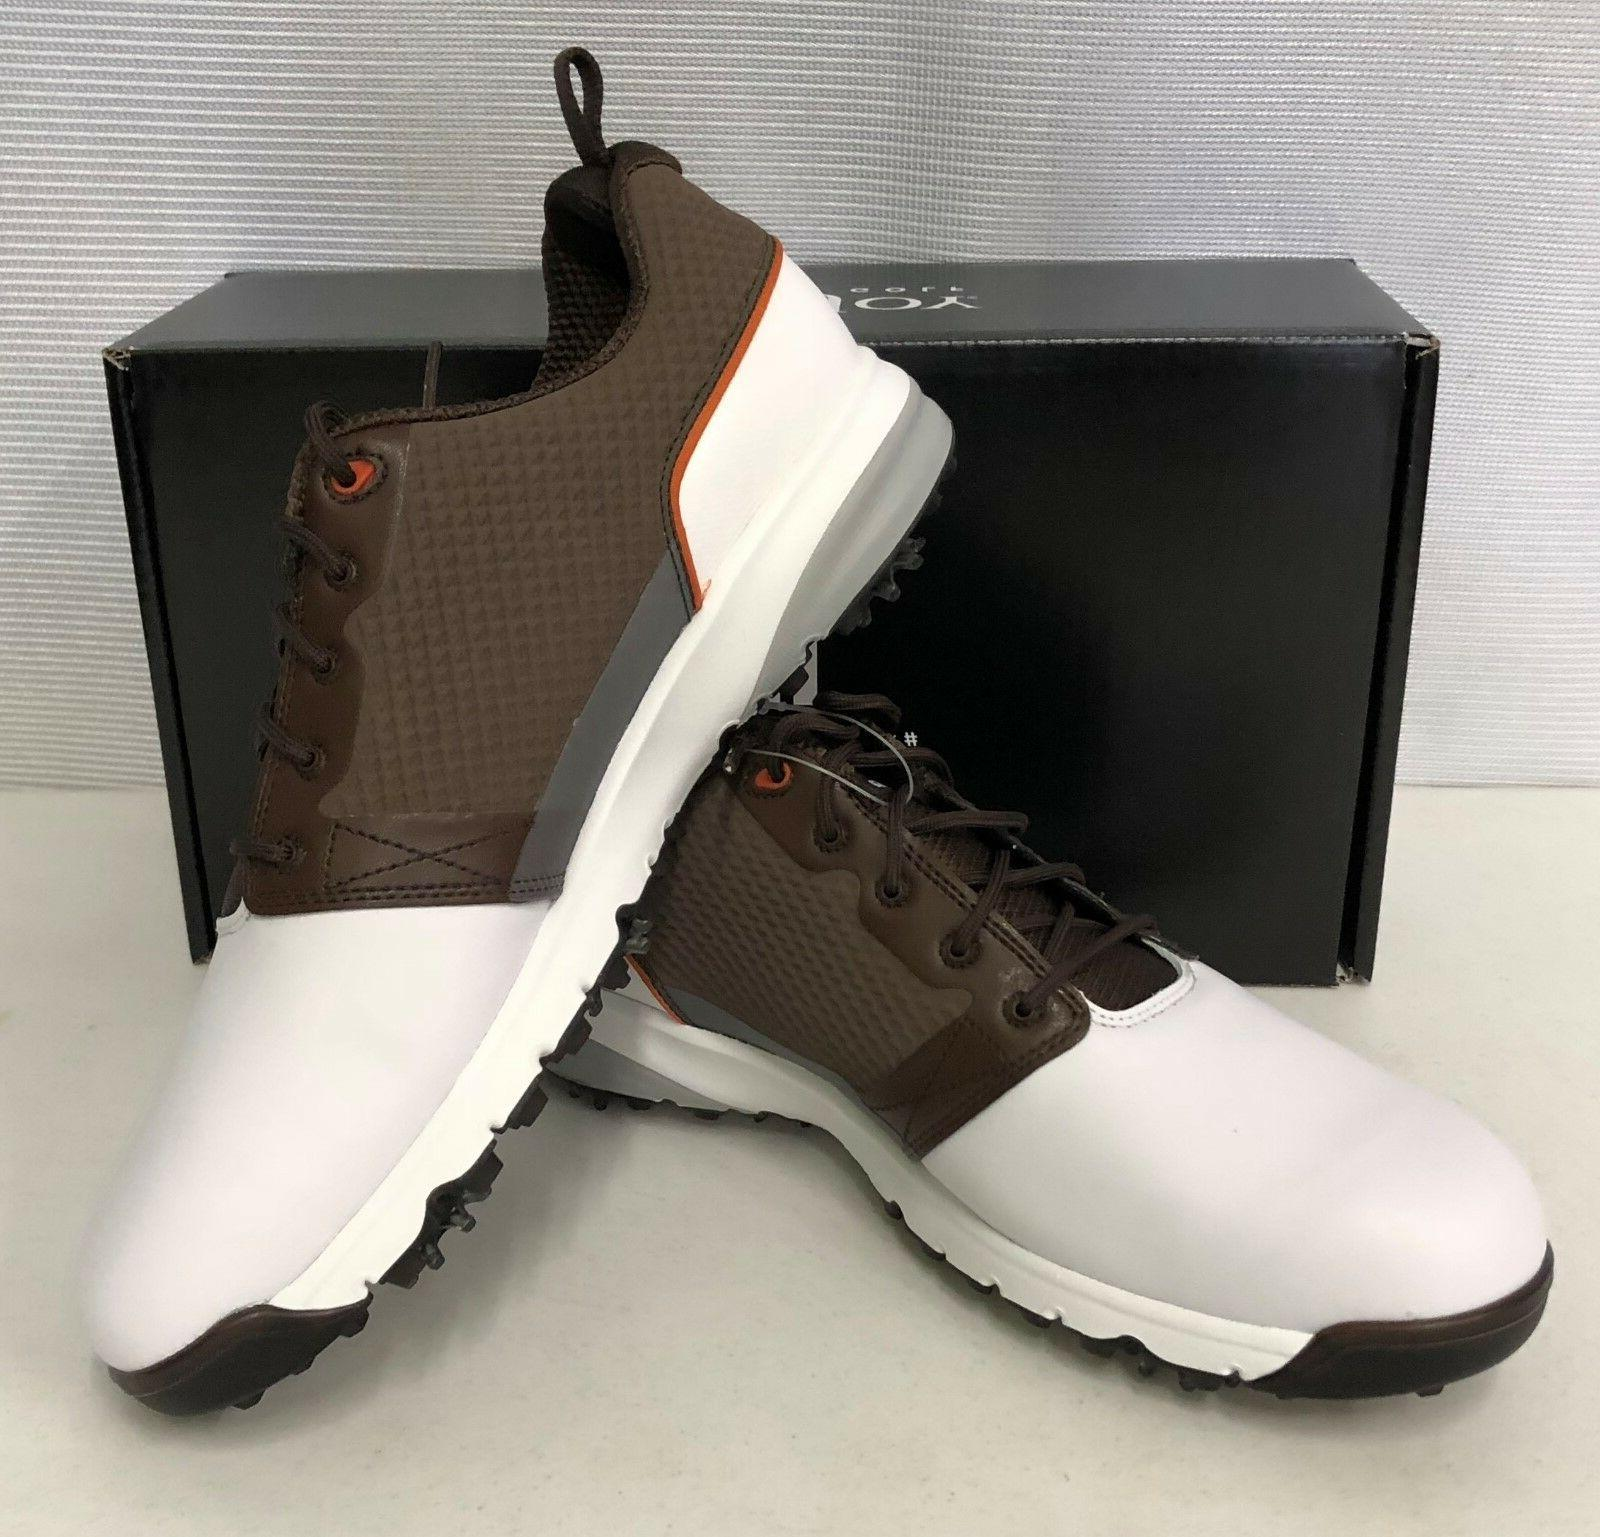 FootJoy Shoes - - #54096 - New in